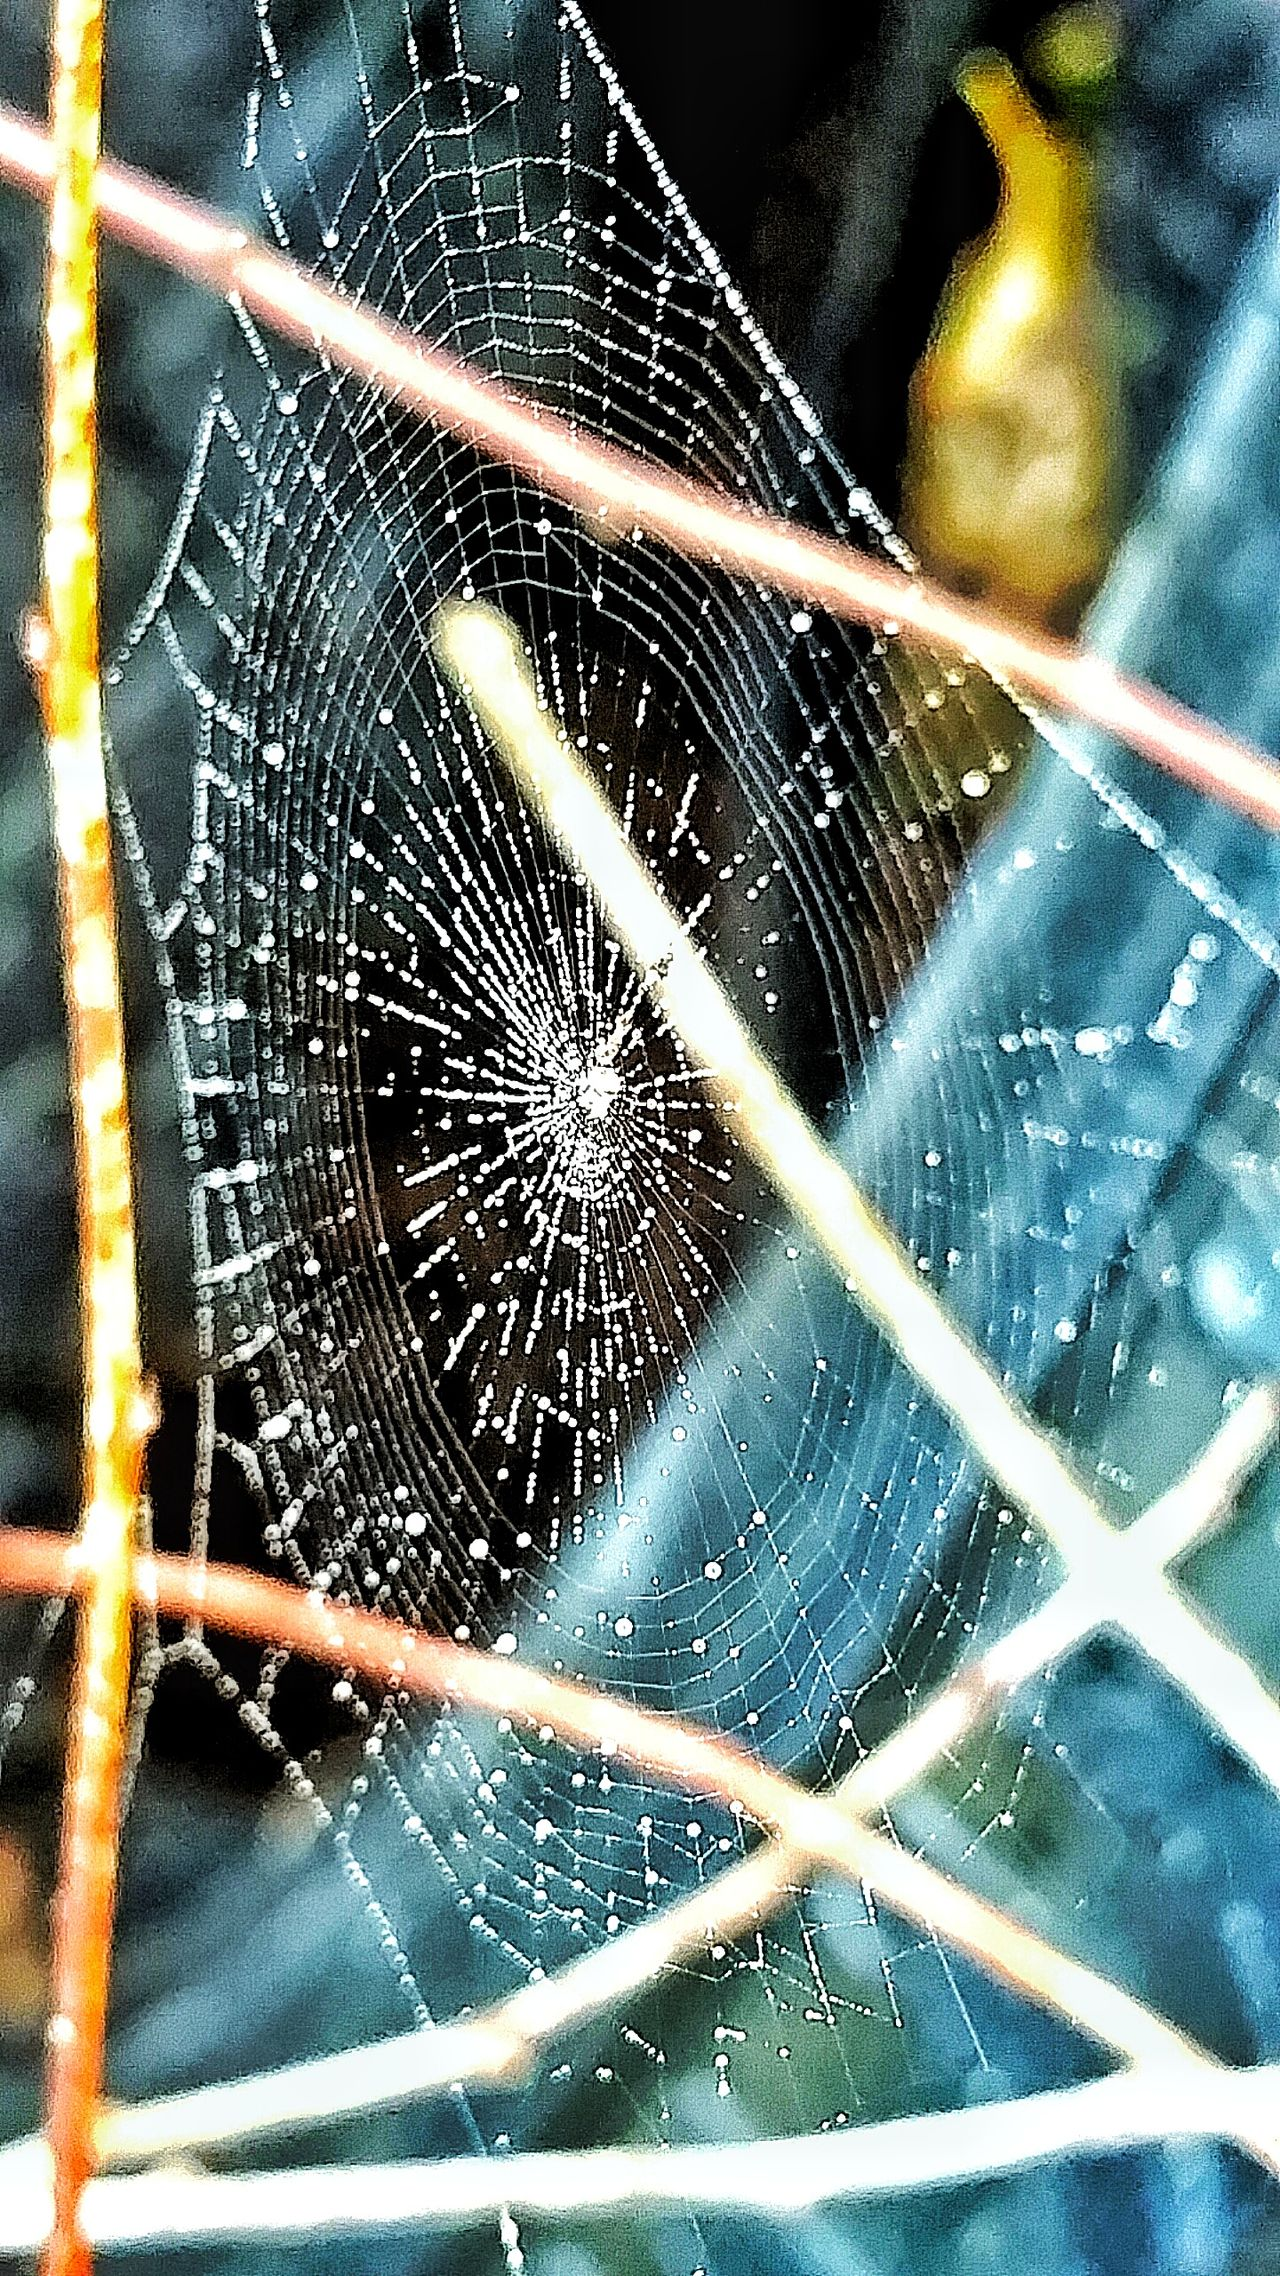 Spider Spider Web Close-up Fragility Dew Drops On Spider Web Foggy Morning Beauty In Nature Animals In The Wild Wet Pattern Dawn Dewdrops Sunrise Shapes And Forms Patterns In Nature Textured  Macro Designs In Nature Nature